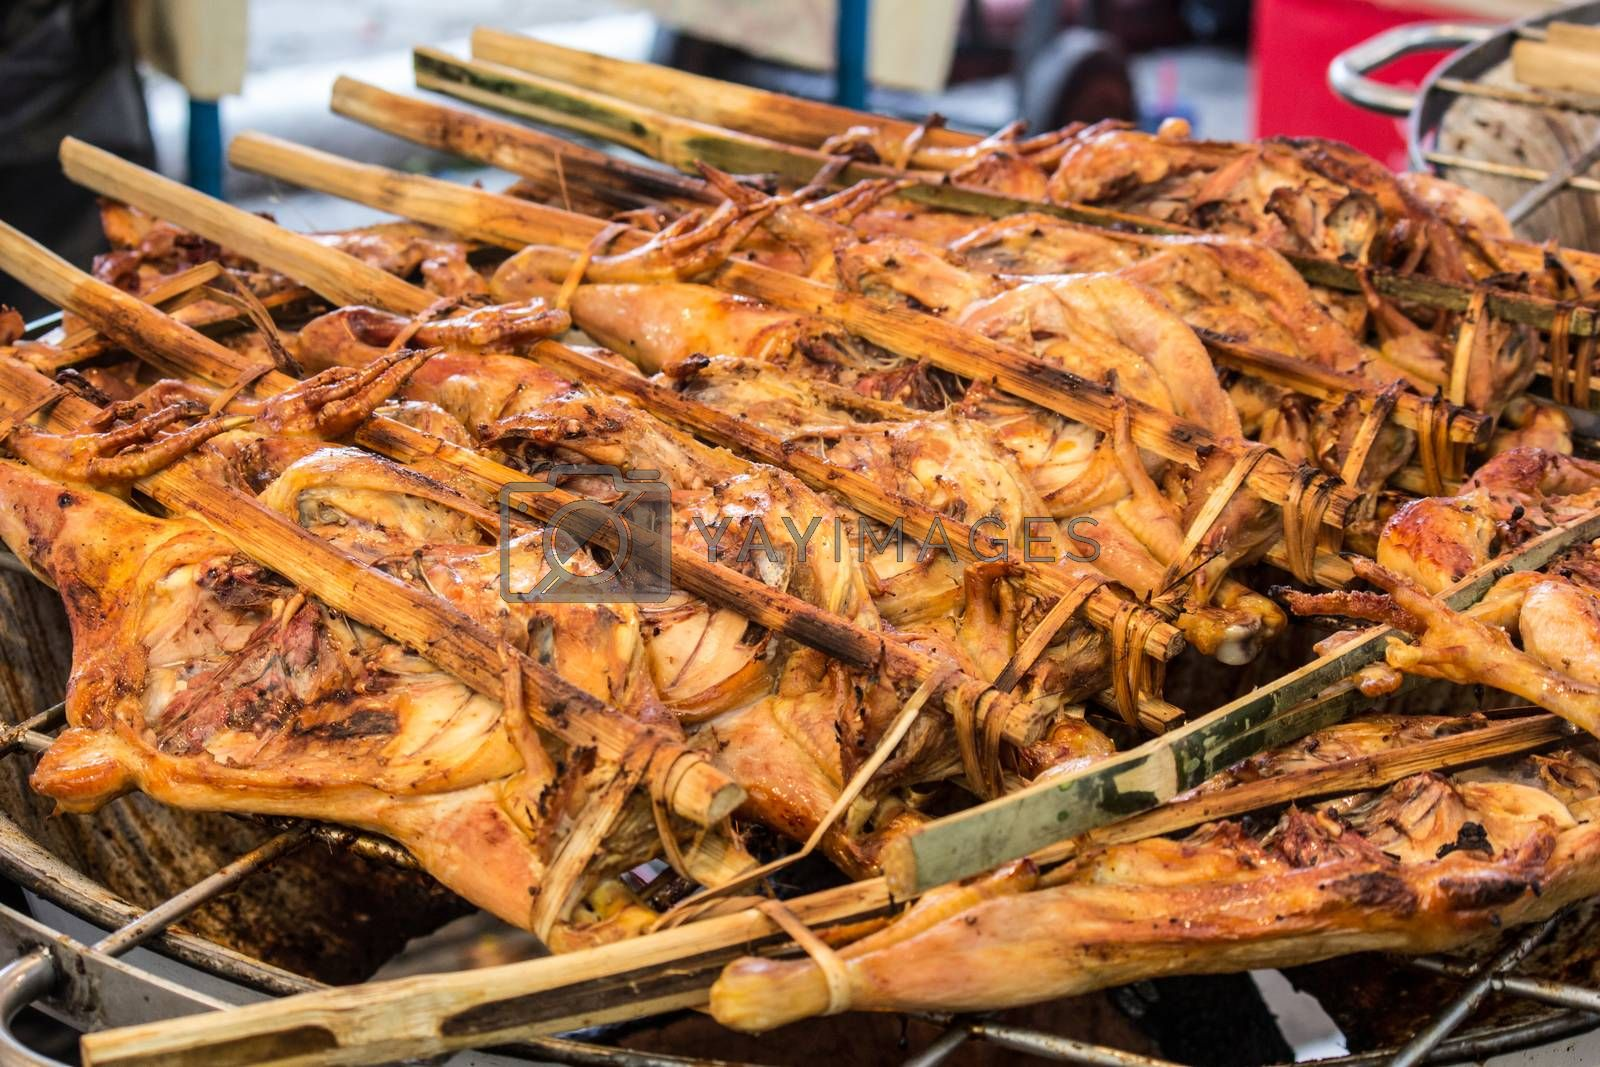 grilled chicken sold by street food vendor